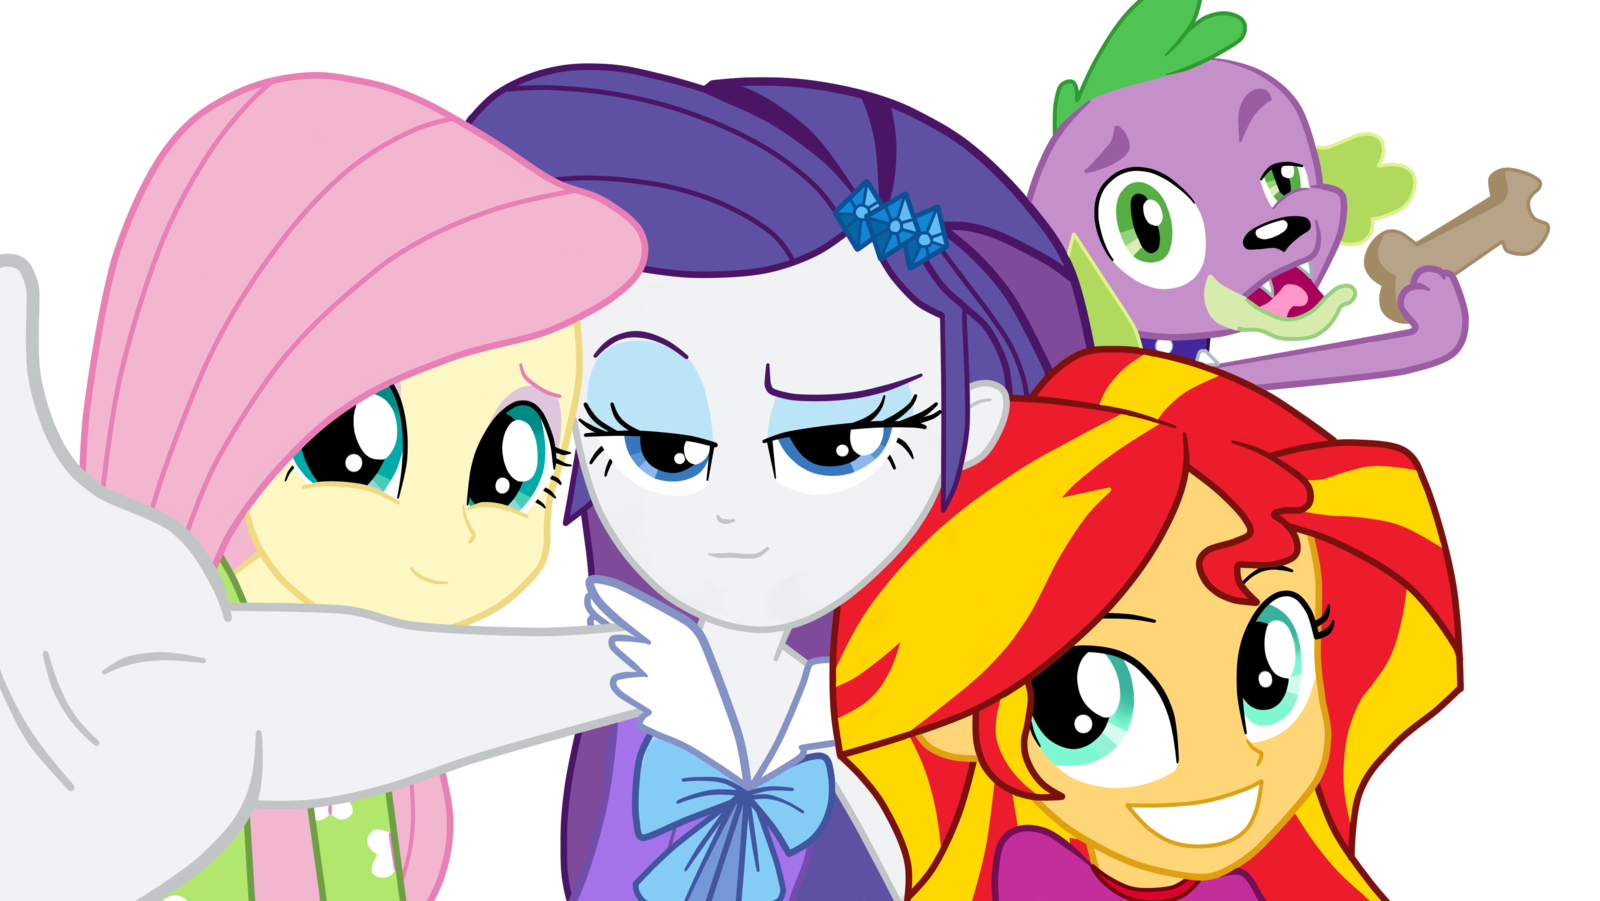 Party pmv this kiss carly rae jepson 4